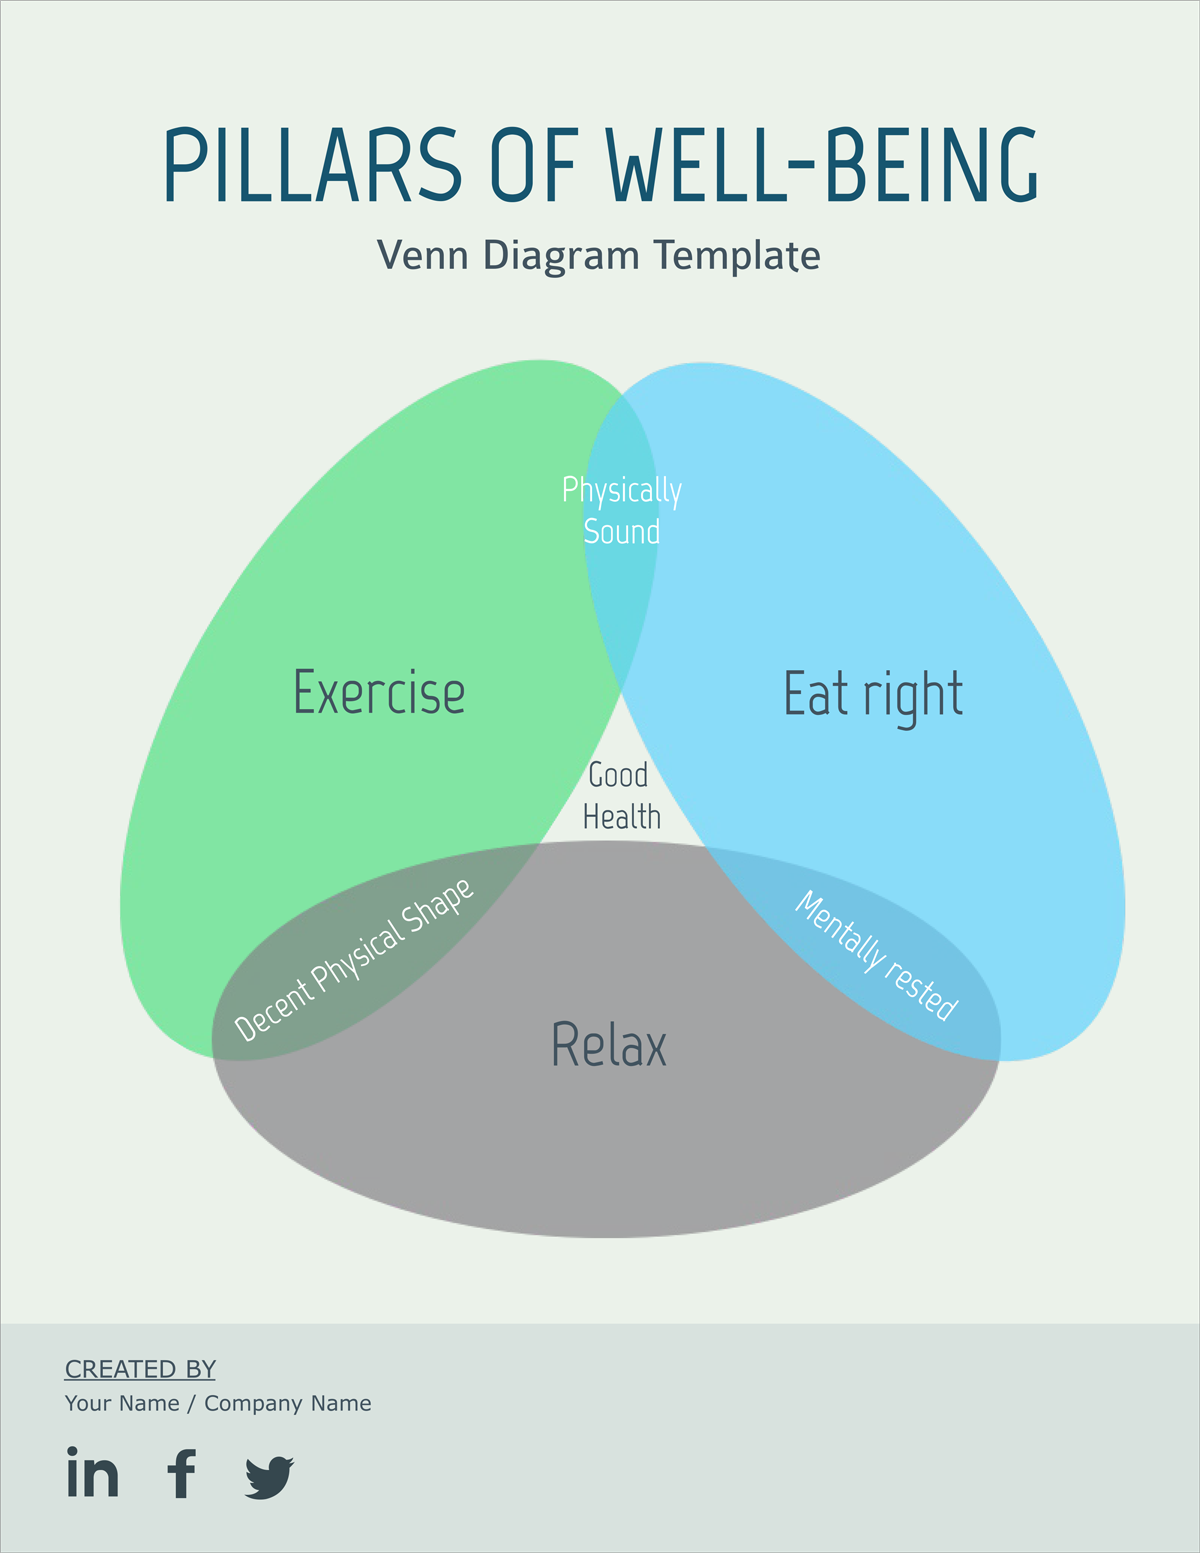 Free venn diagram template edit online and download visual pillars of well being triangle venn diagram template pooptronica Choice Image